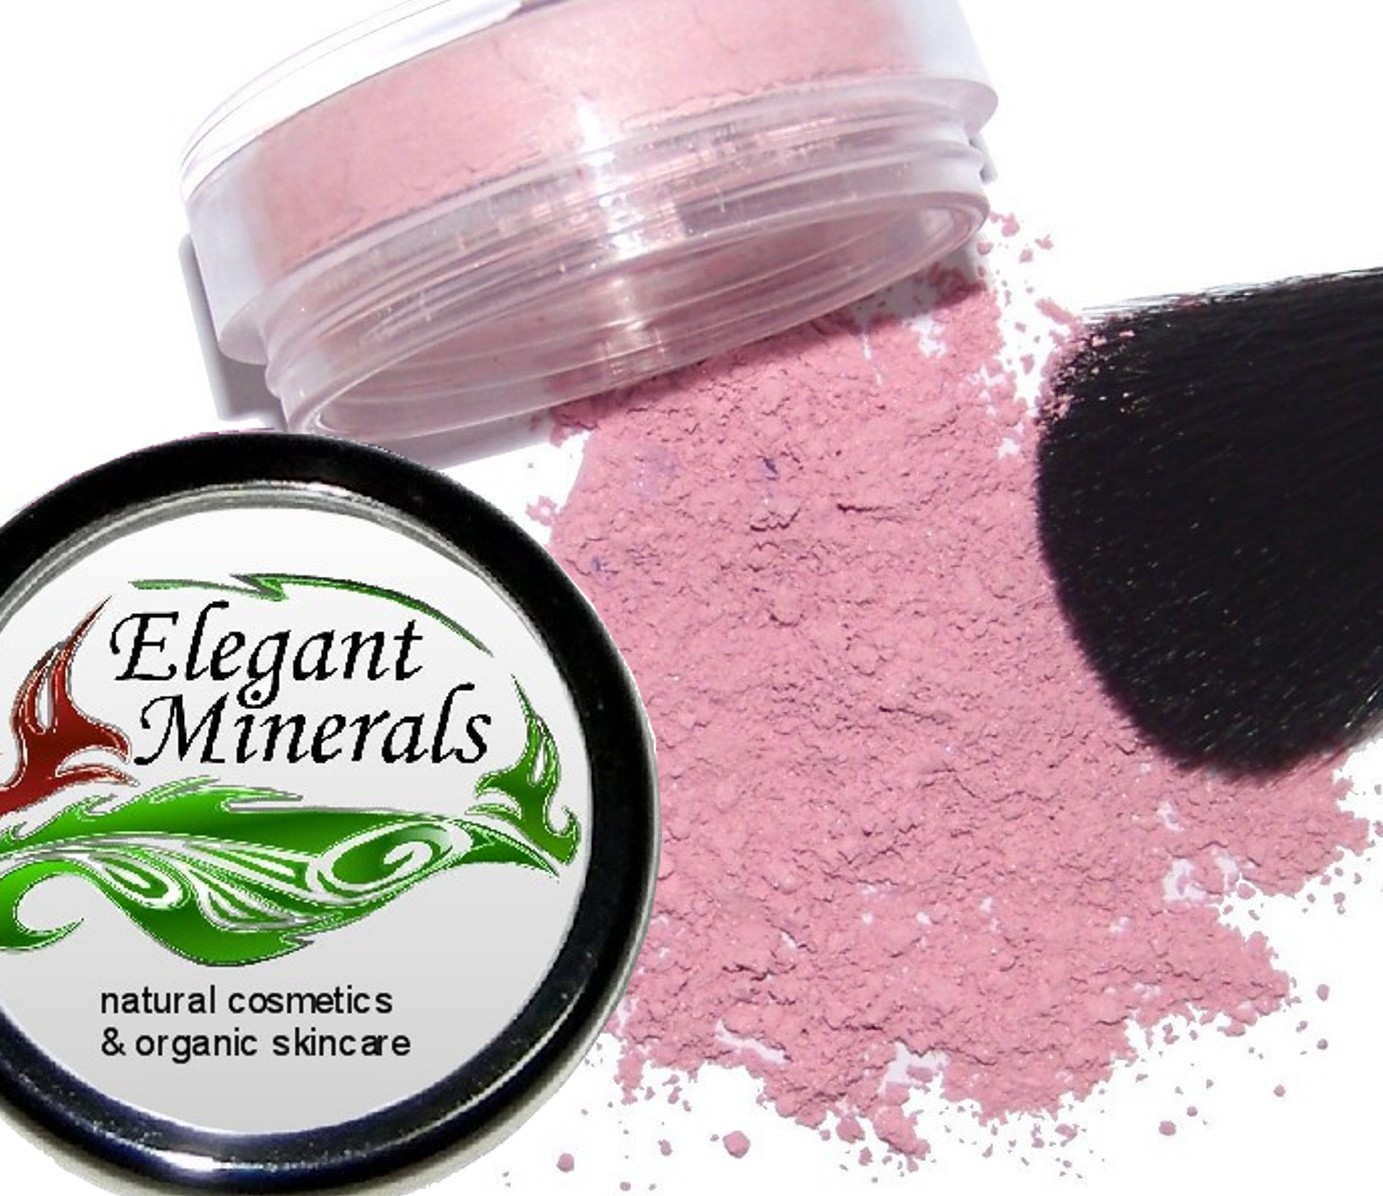 elegant-minerals-all-natural-blush-bronzer-cosmetics-made-in-usa2014.jpg